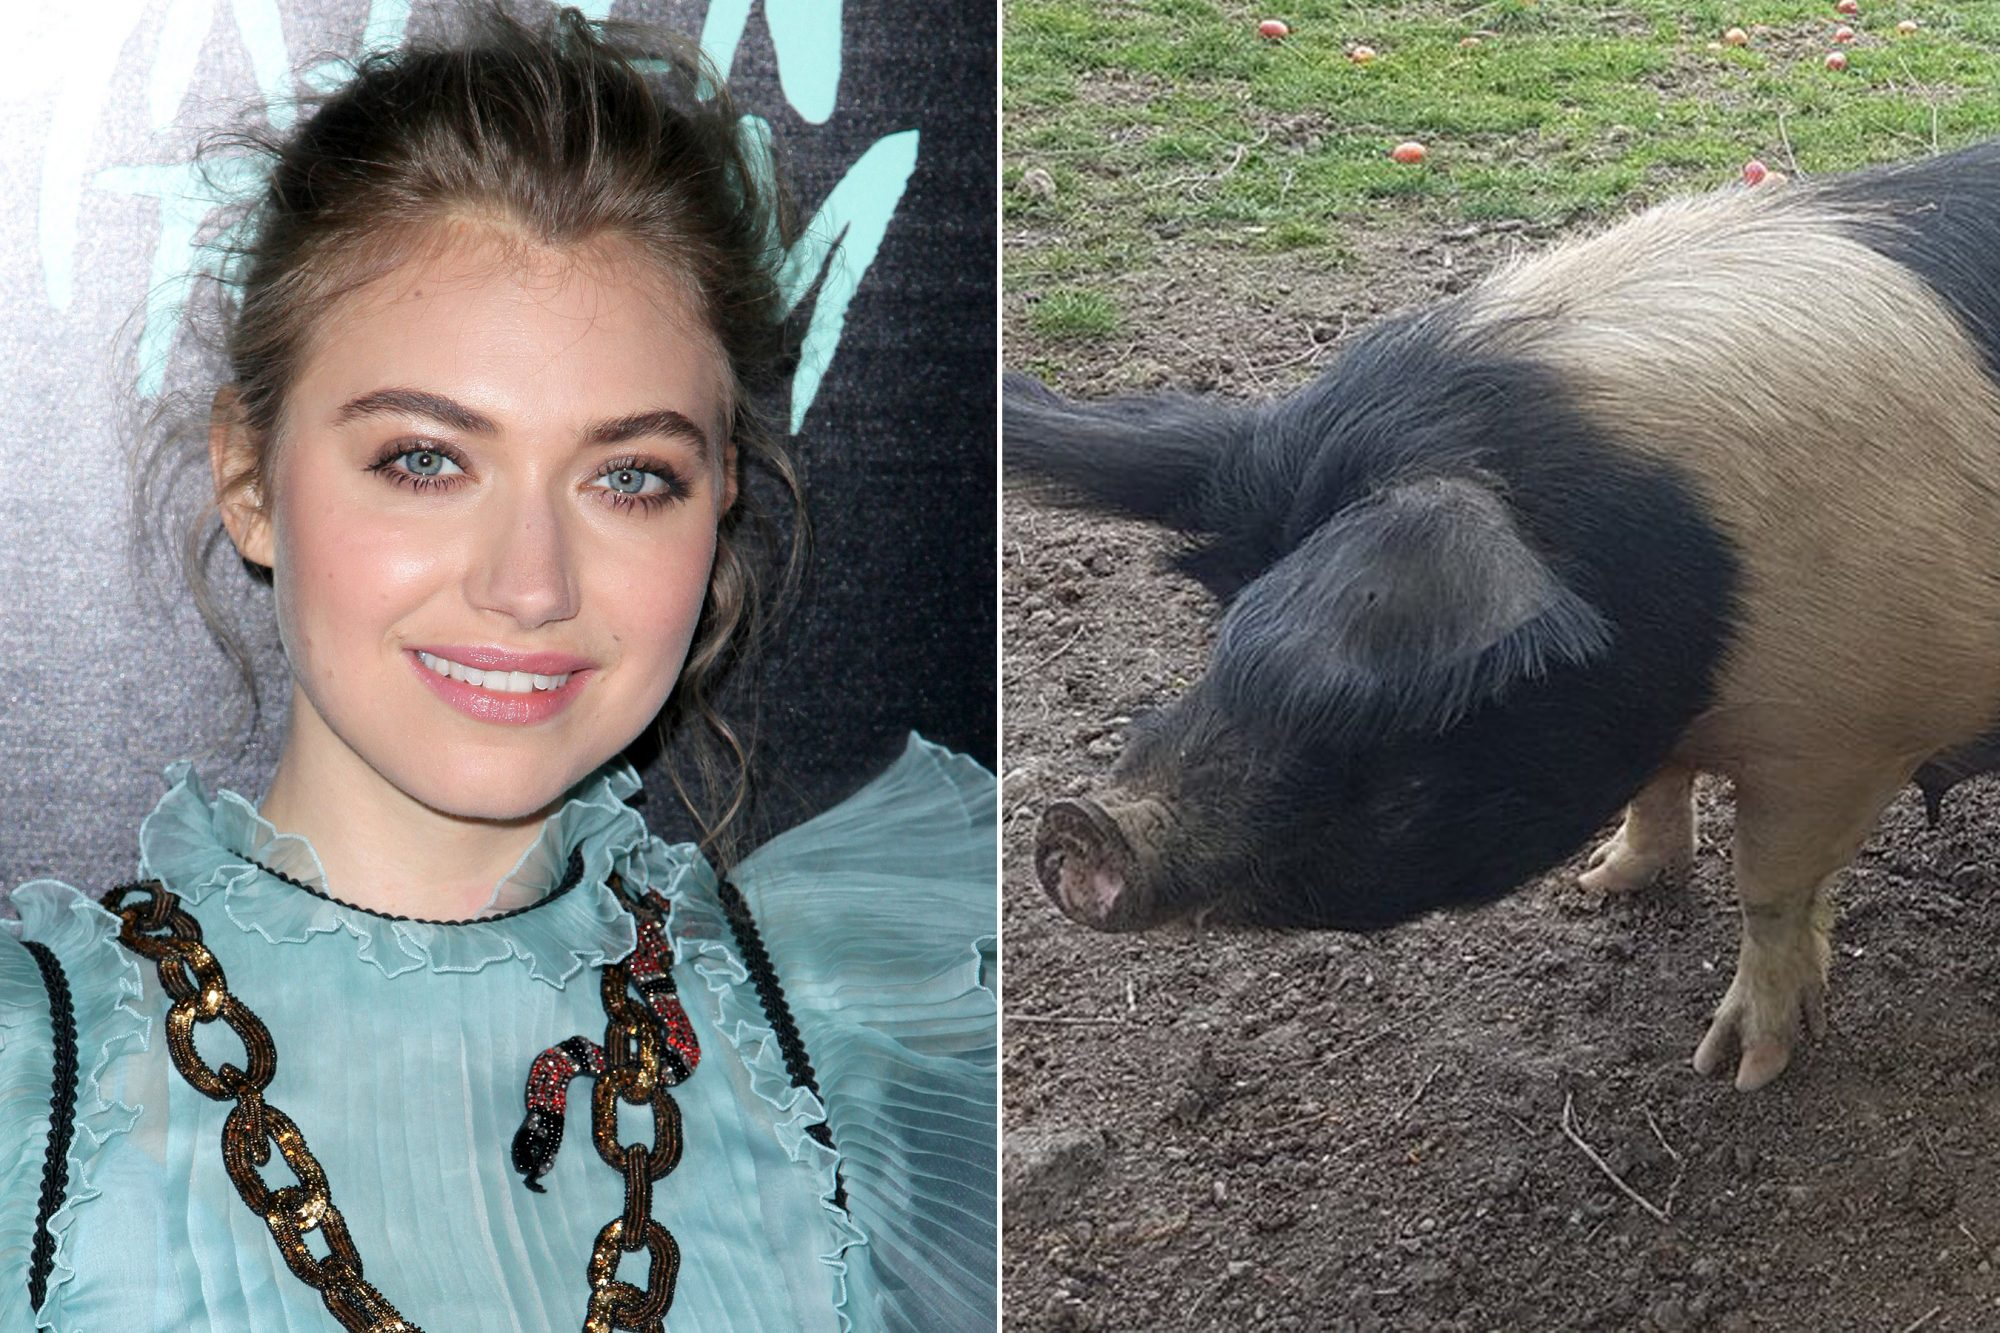 Imogen Poots and Pig Imogen Poots